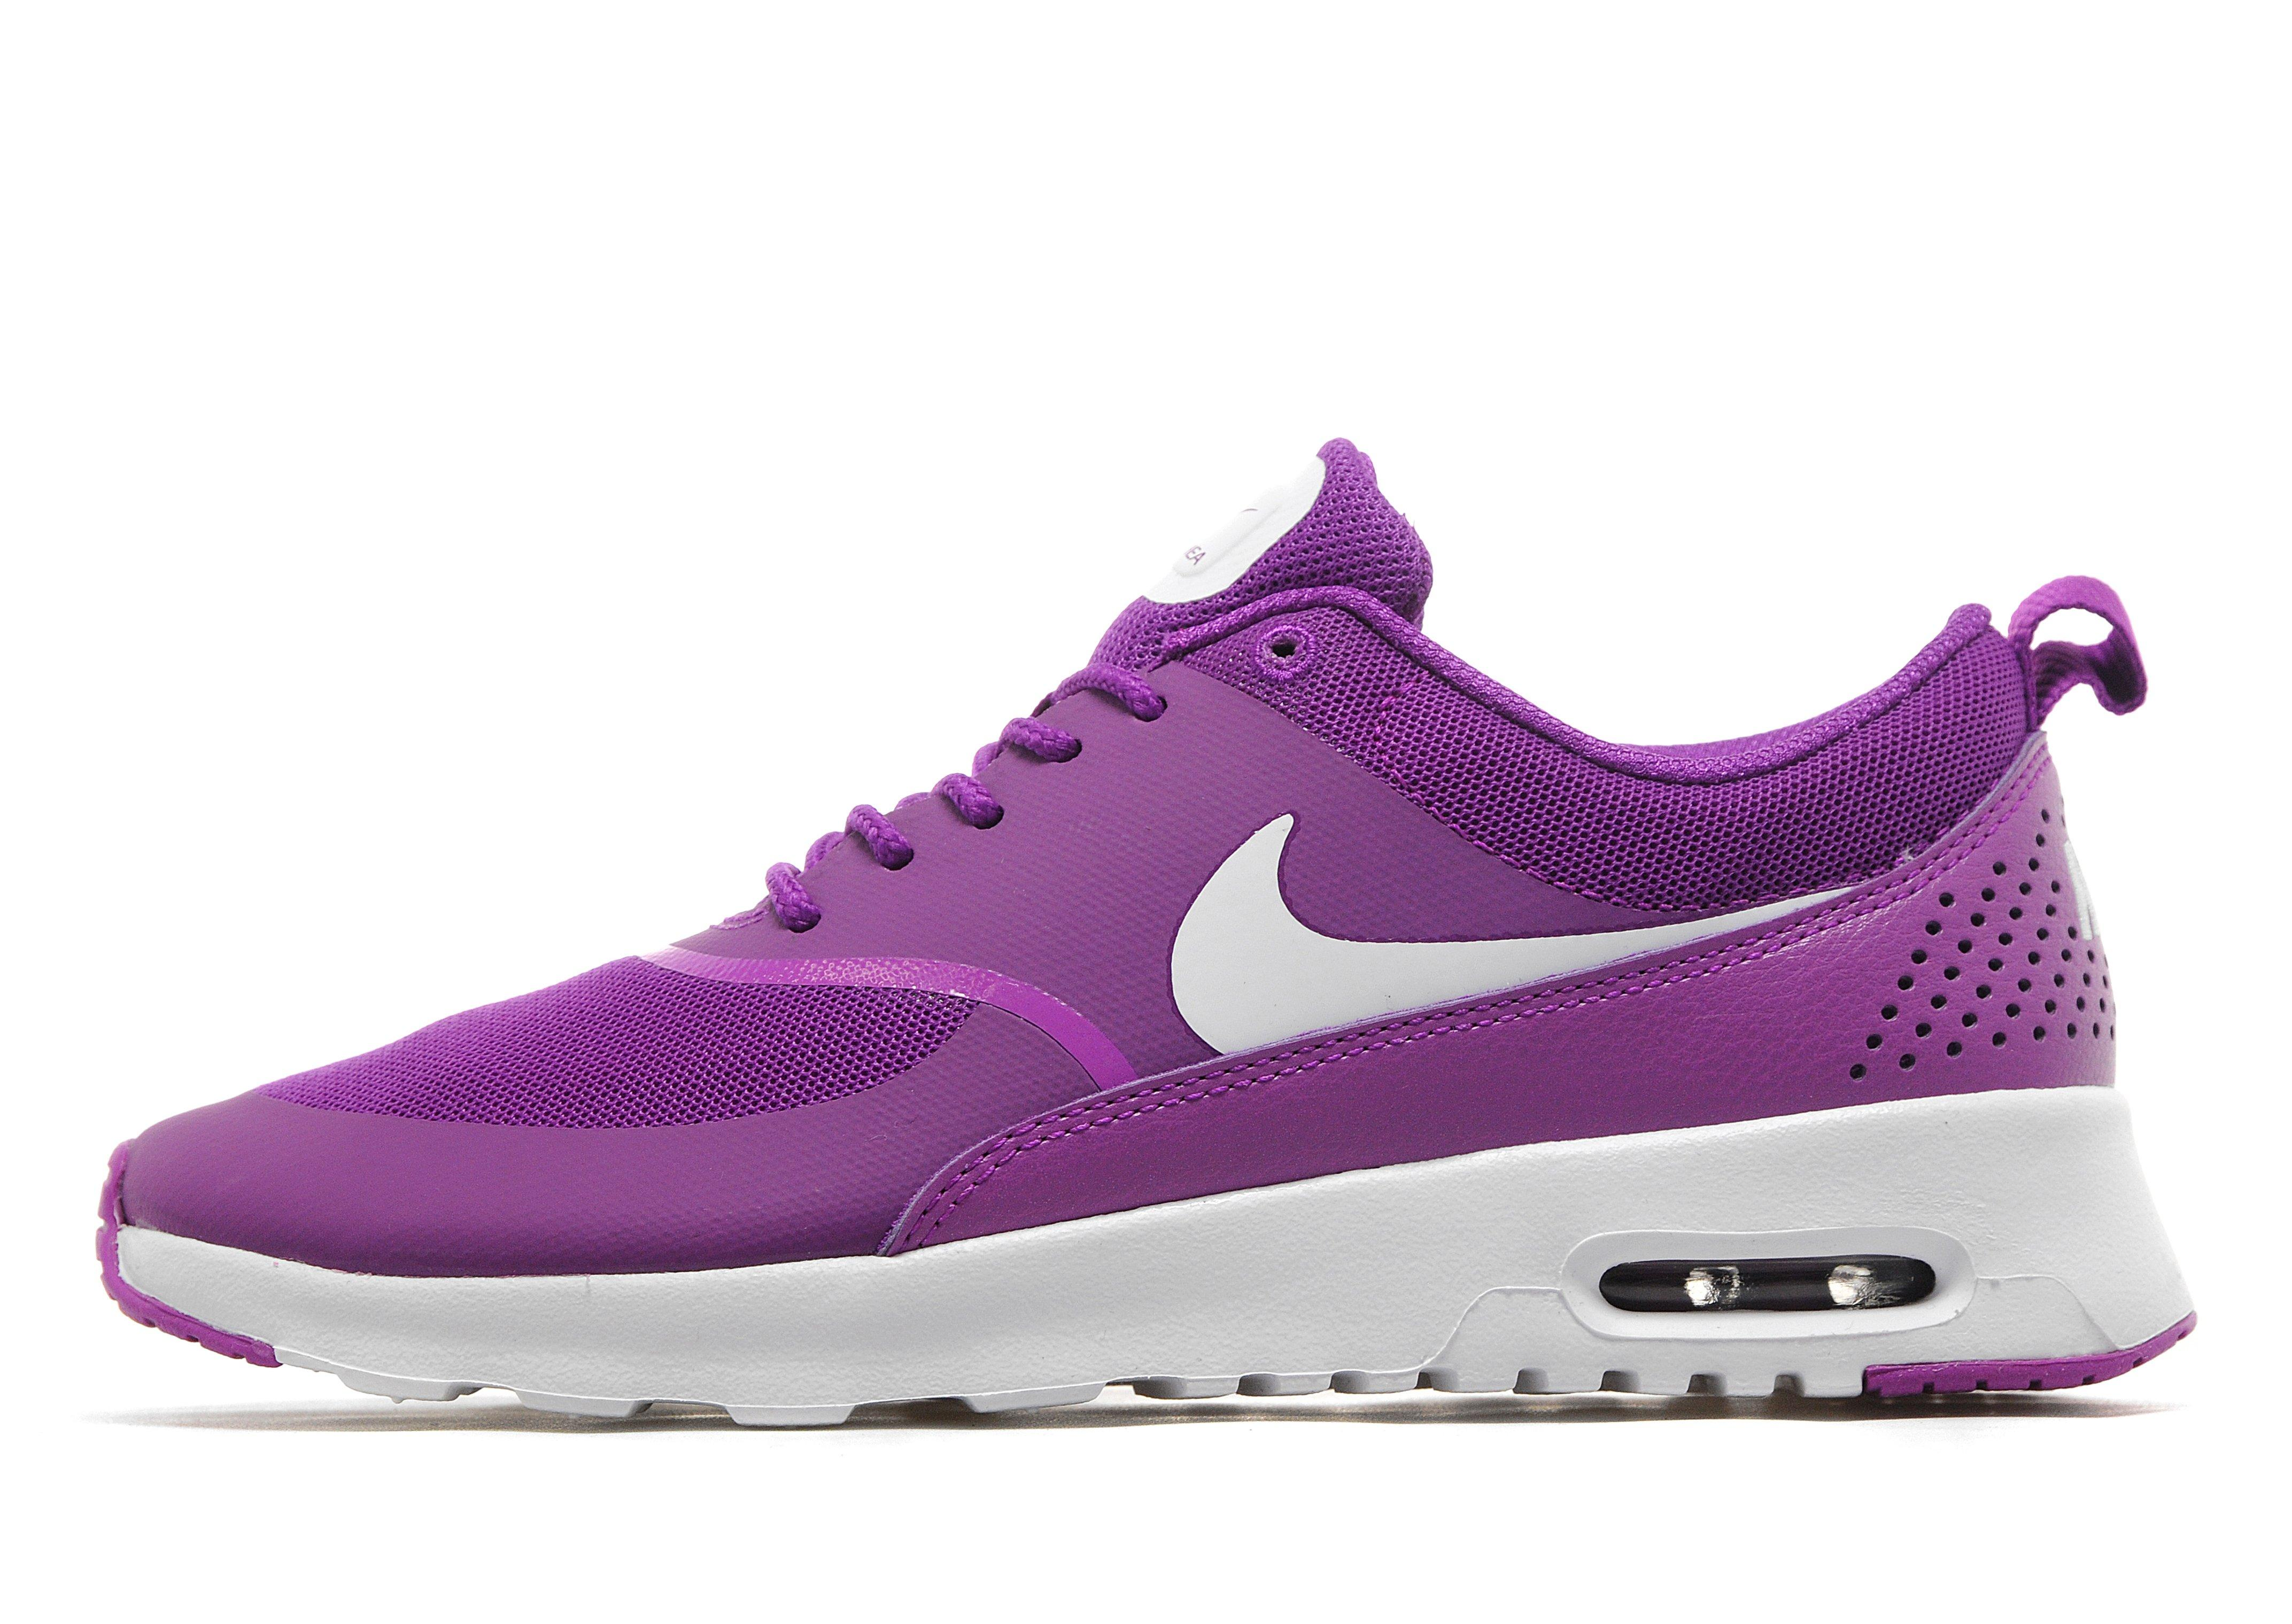 nike air max thea womens sale. Black Bedroom Furniture Sets. Home Design Ideas